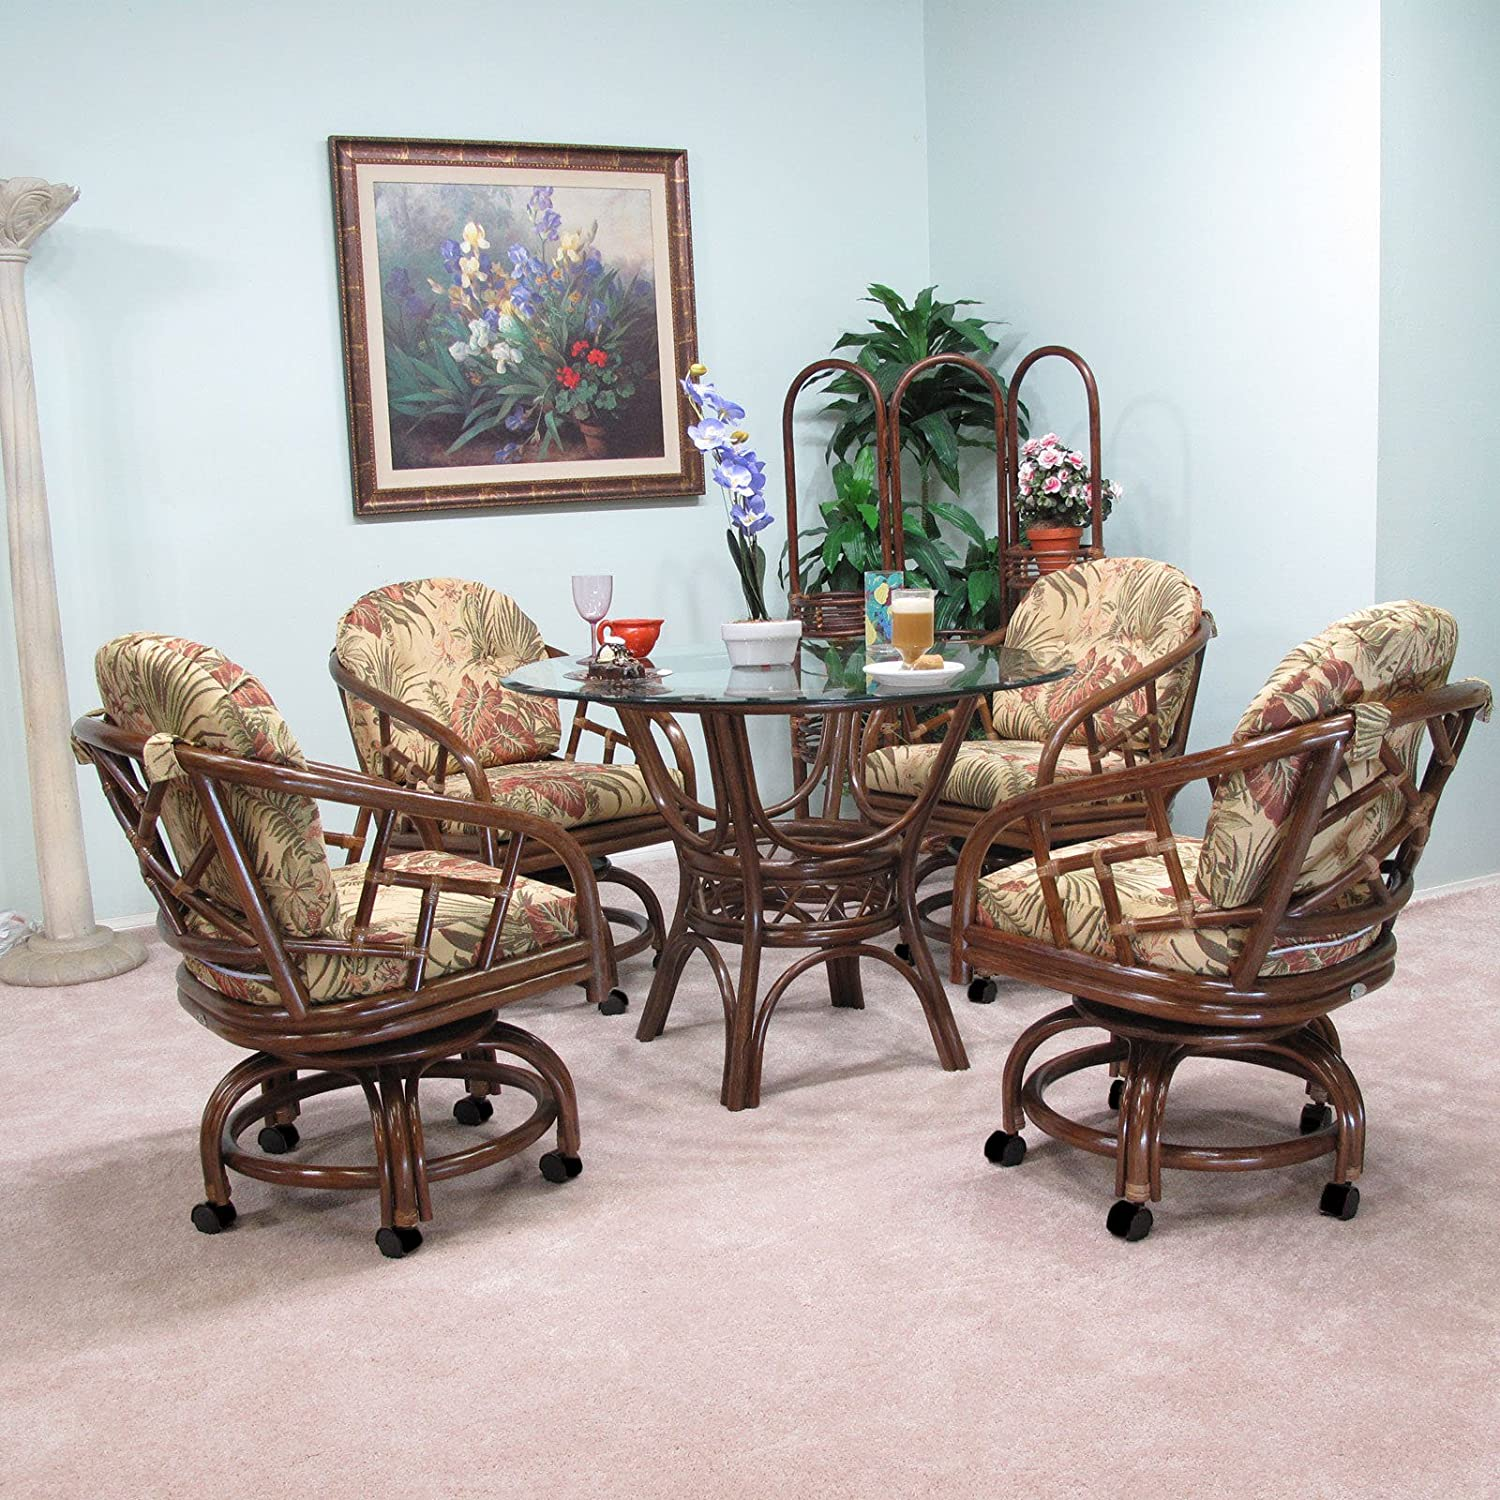 urbandesignfurnishings.com Made in USA Rattan Chiba Dining Caster Chair Table Gaming Furniture 5 Piece Set (Walnut; Panama Tropic fabric)